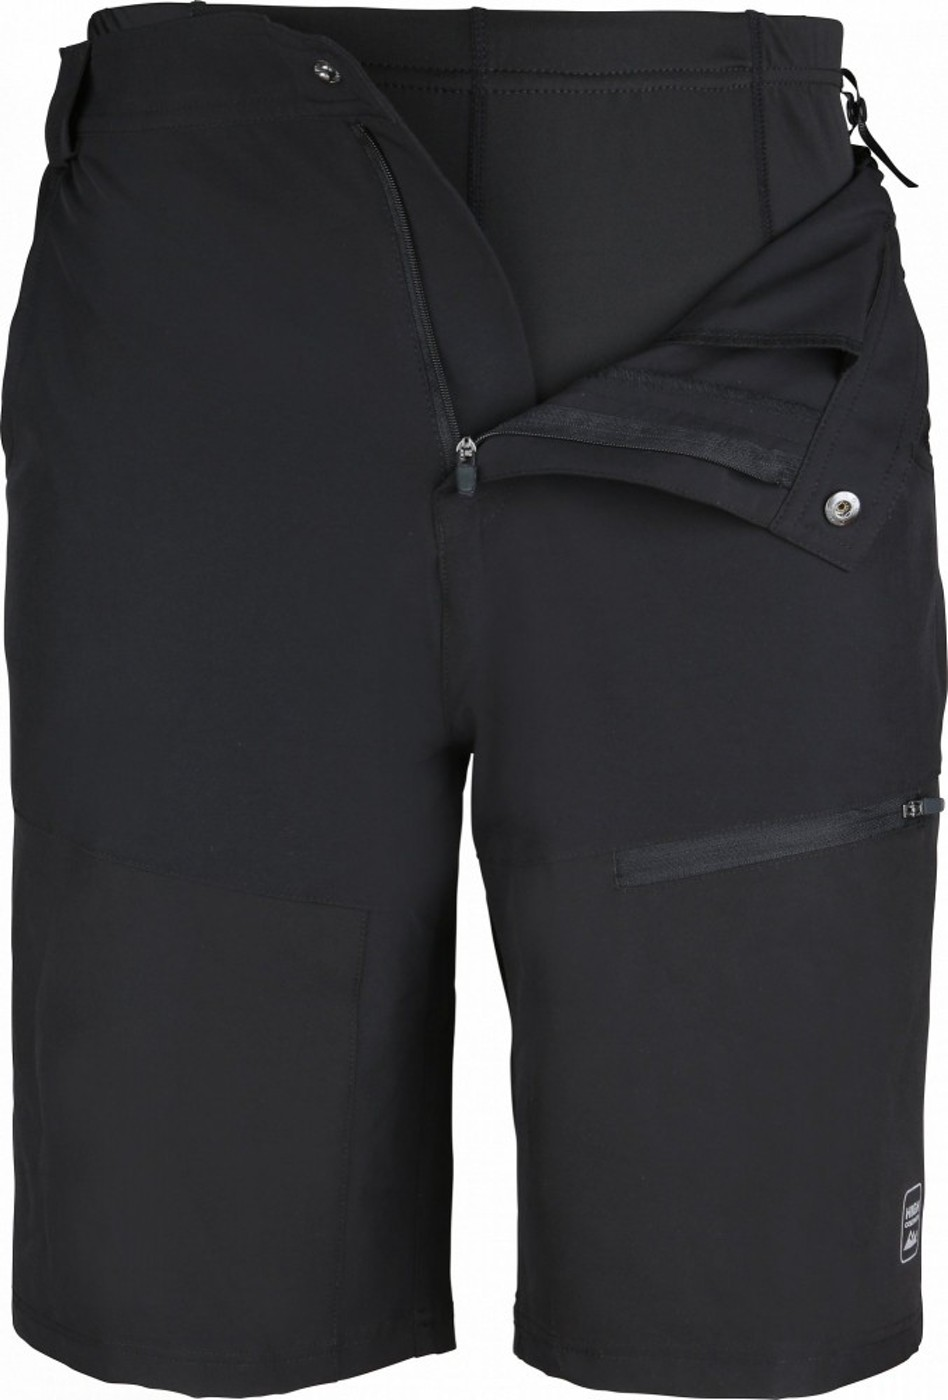 HIGH COLORADO 2in1 Short - Herren